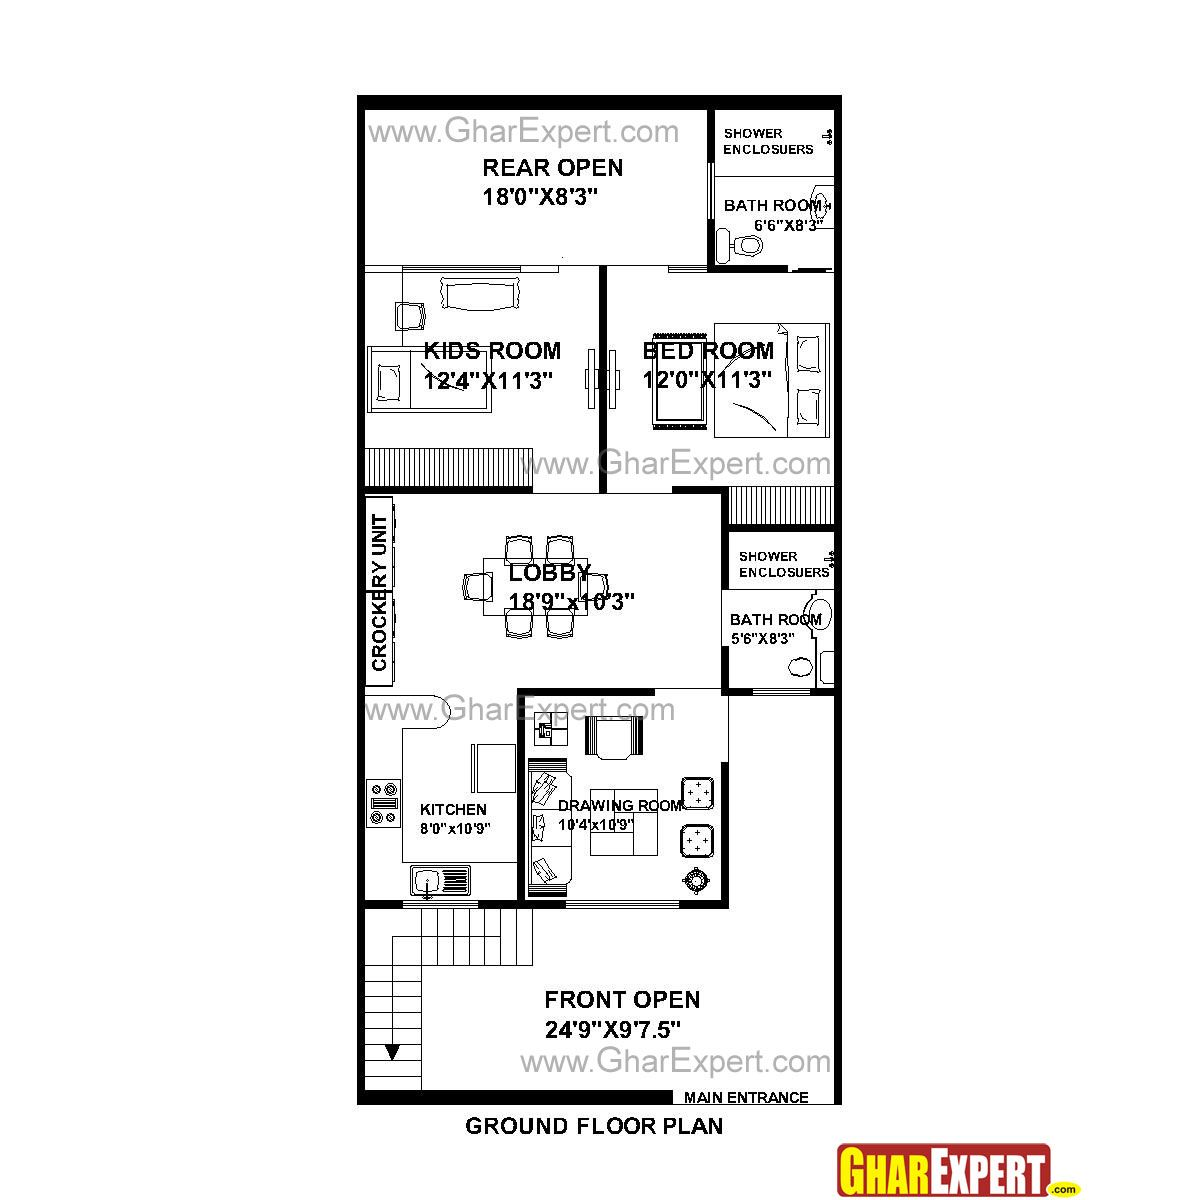 20 X 50 Square Feet Home Design: House Plan For 25 Feet By 53 Feet Plot (Plot Size 147